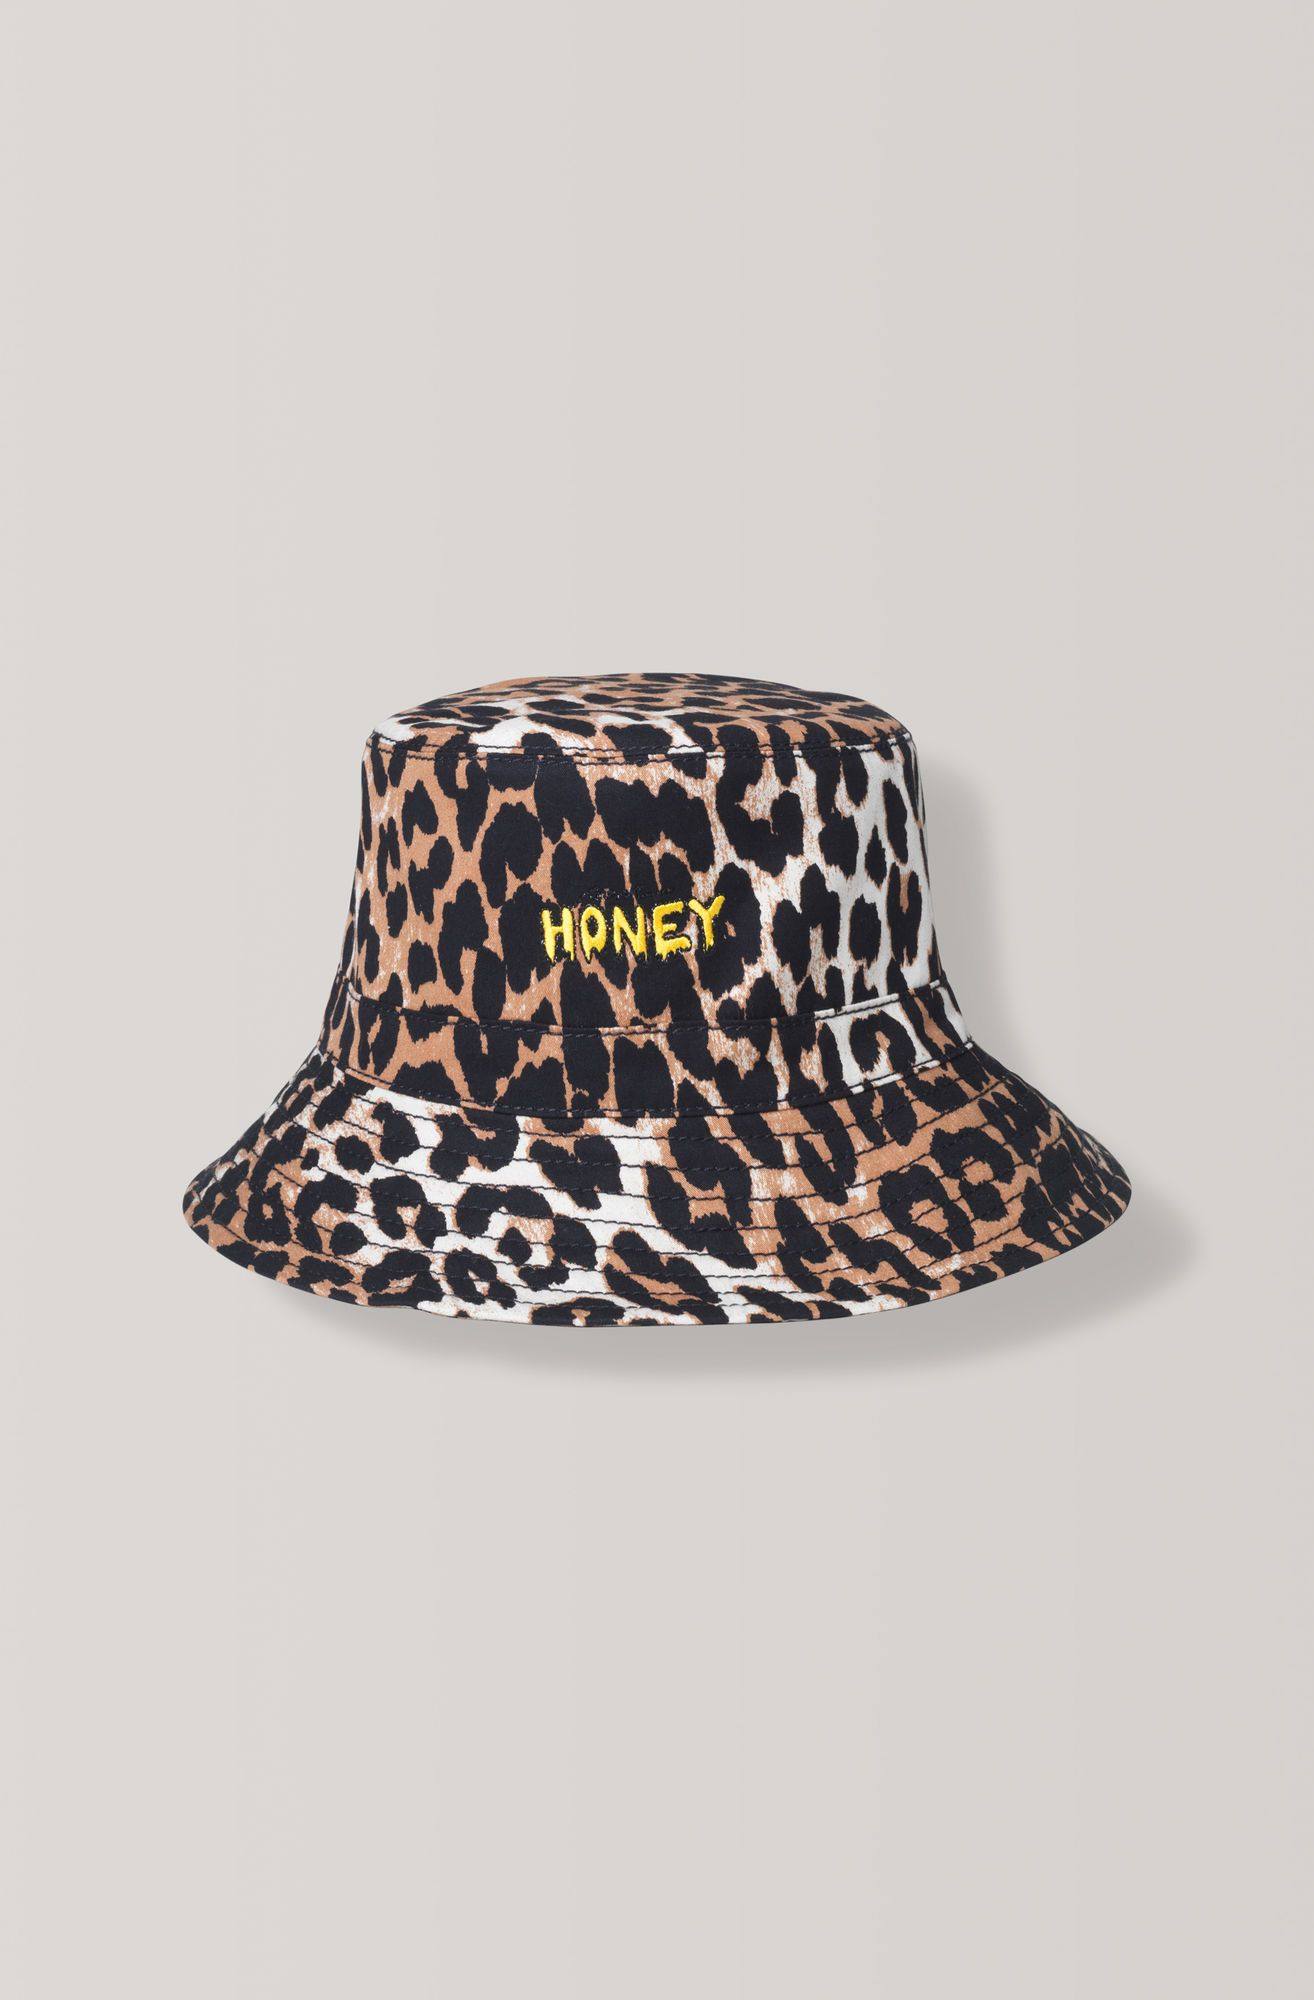 586f07d90715 Soft bucket hat made from 100% cotton with embroidery in front. This item is